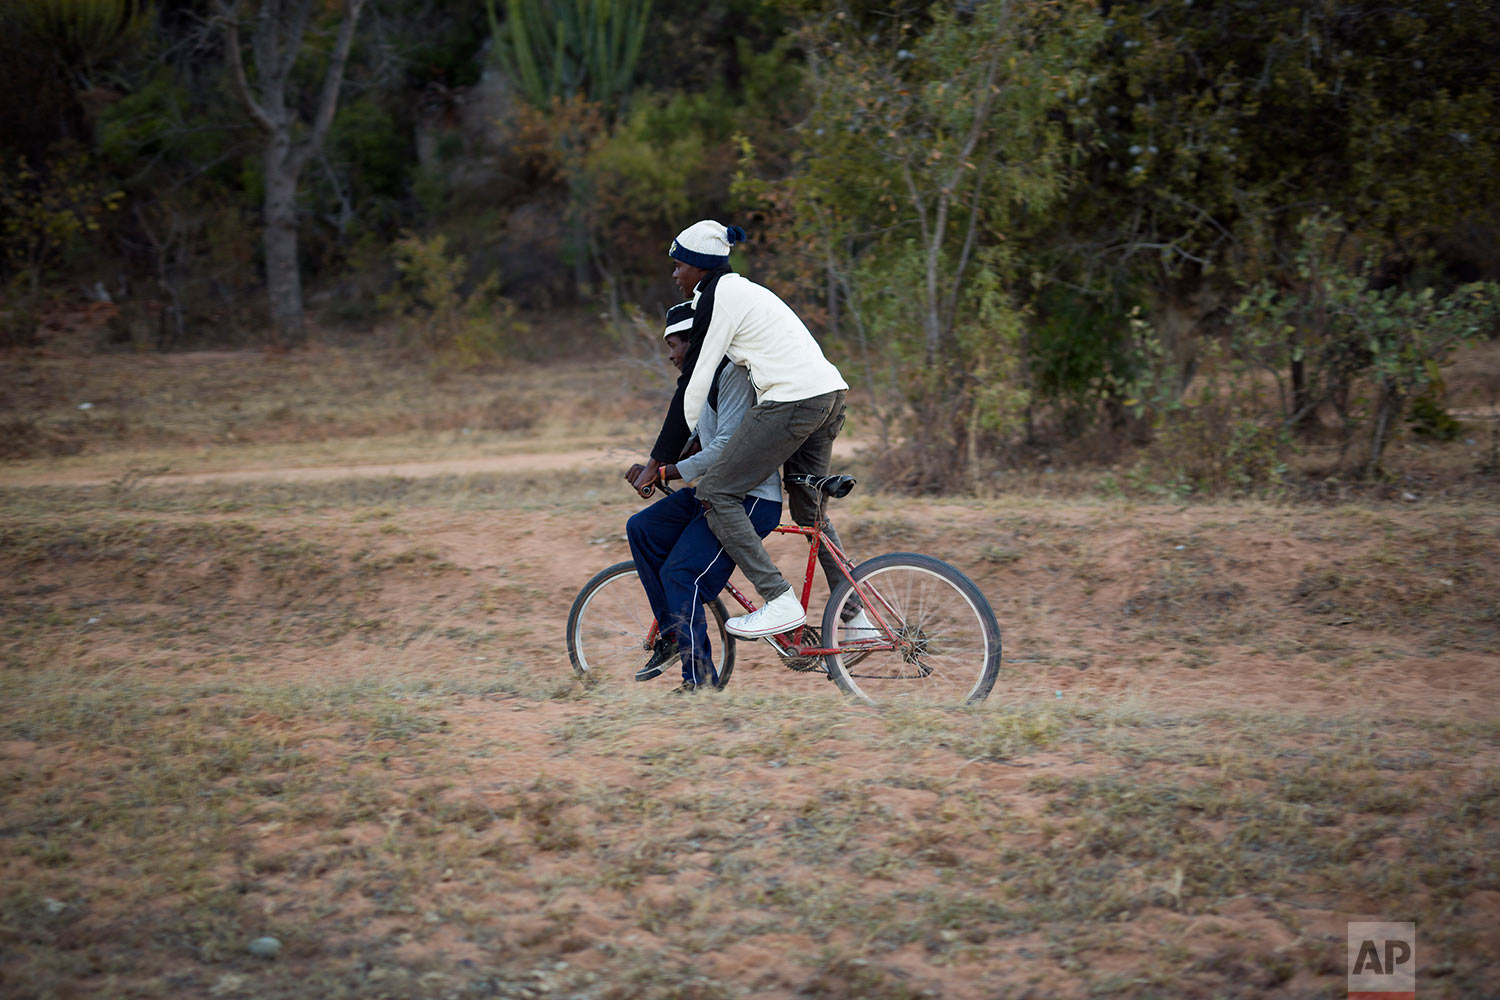 Men ride a bicycle near the village of Silozwi in the Matobo hills in Zimbabwe.(AP Photo/Jerome Delay)